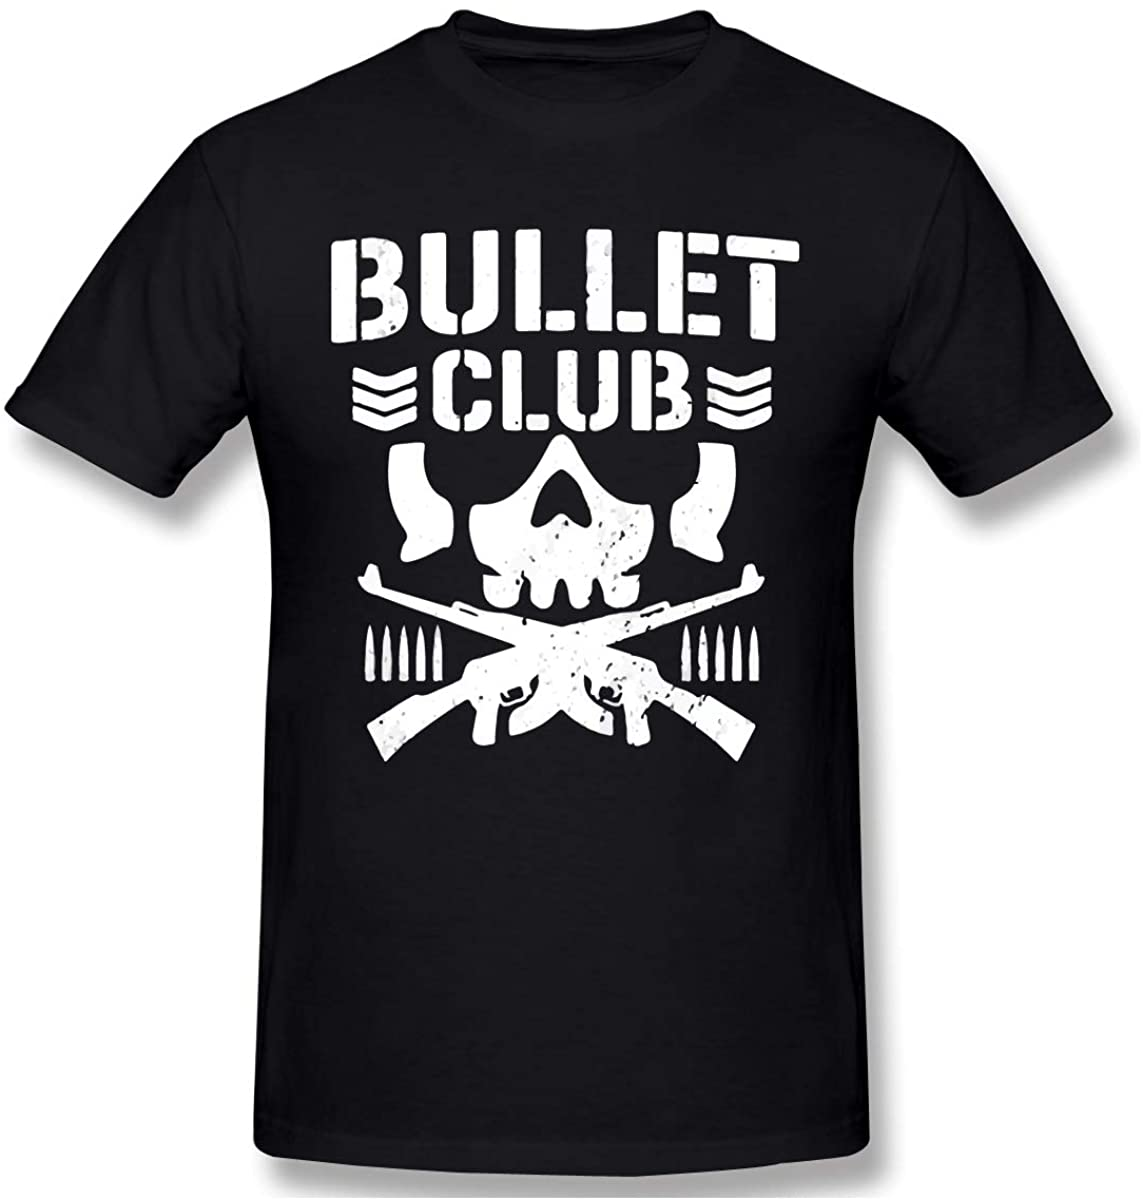 Men's Vintage Club of Bullet Graphic Shirts for Men Novelty Idea Casual Short Sleeve T-Shirt